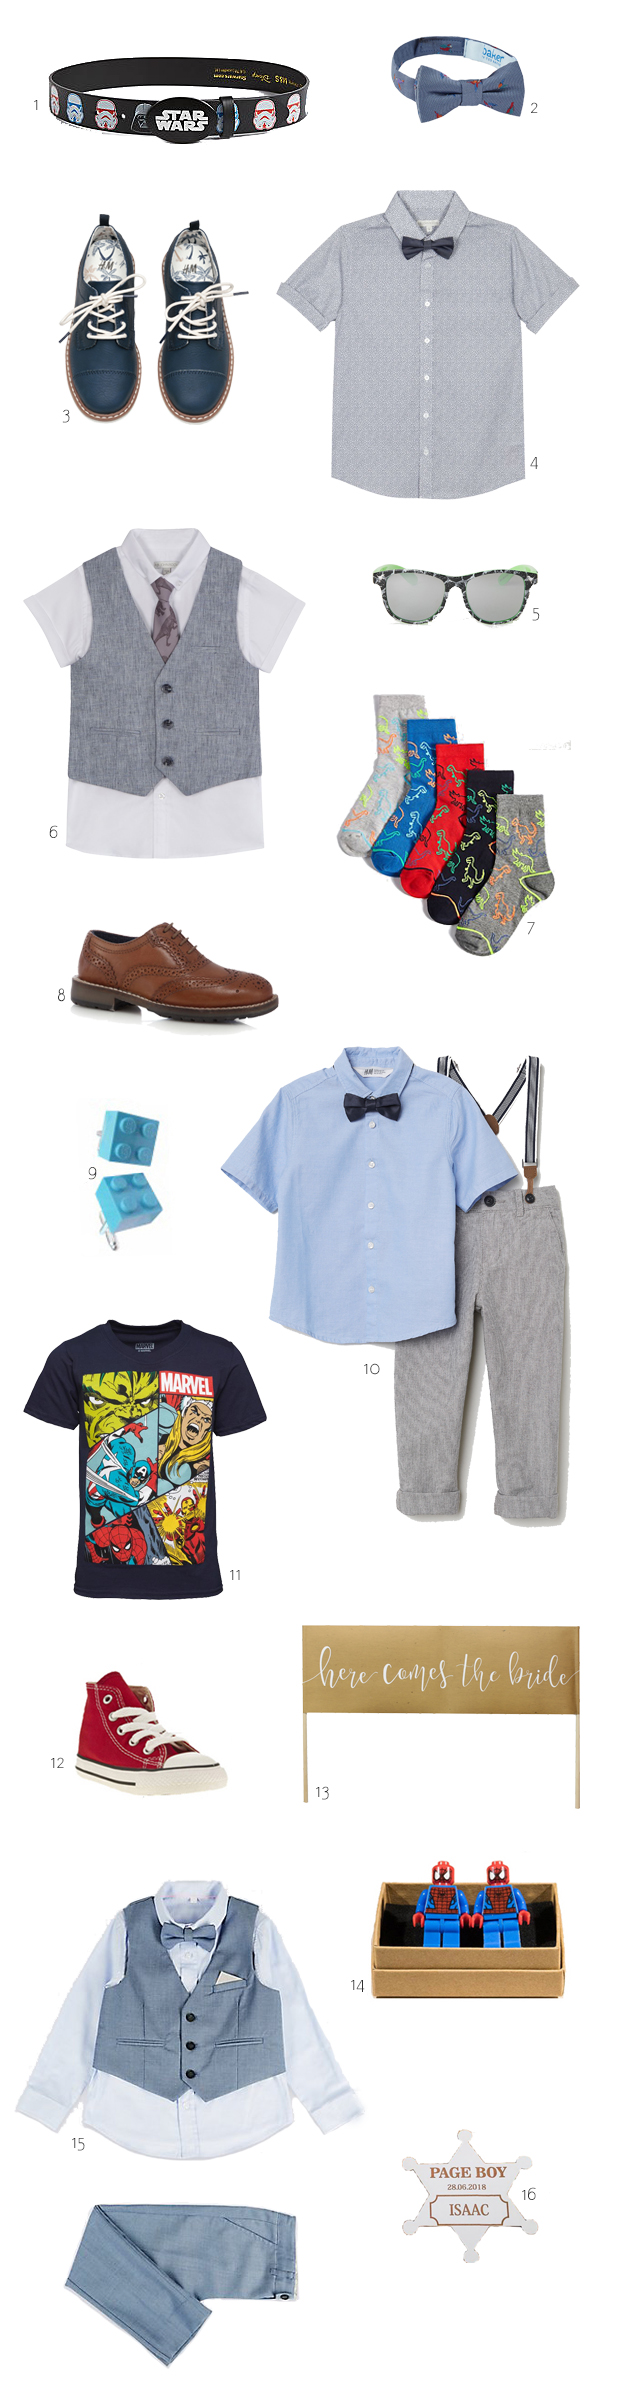 Adorable Outfits & Accessories for Your Page Boy